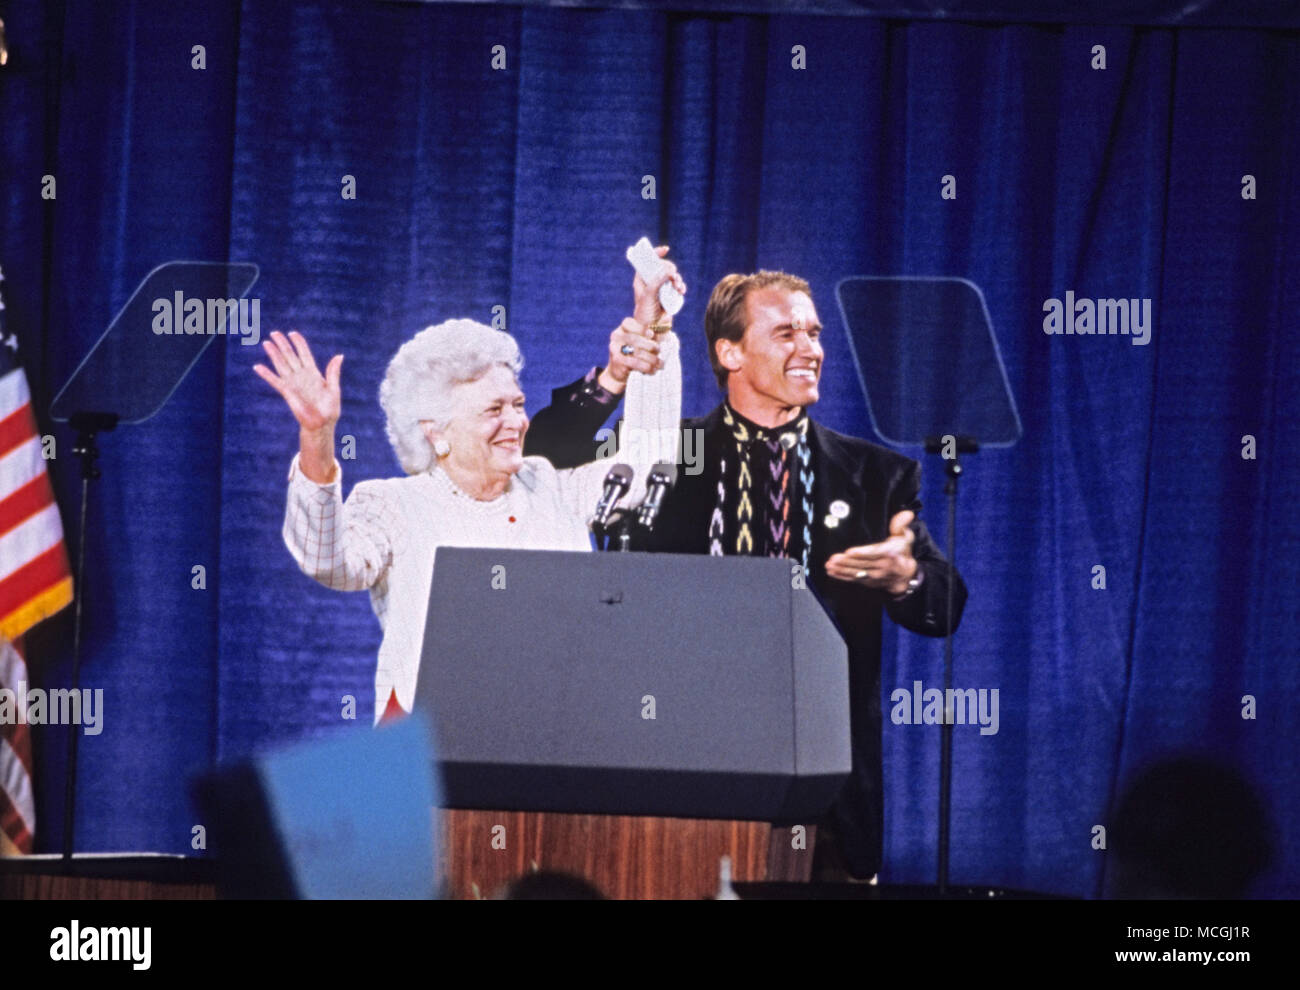 April 16, 2018 - (File Photo) - Former first lady Barbara Bush was reported in failing health and has decided not to seek further medical treatment, a family spokesman says. PICTURED:Feb. 16, 1992 - Derry, New Hampshire, United States of America - Actor ARNOLD SCHWARZENEGGER and first lady BARBARA BUSH speak at a campaign rally for the Bush/Quayle '92 ticket at the Pinkerton Academy in Derry, New Hampshire on February 16, 1992 prior to the 1992 New Hampshire Primary. Credit: Ron Sachs/CNP/ZUMAPRESS.com/Alamy Live News Stock Photo